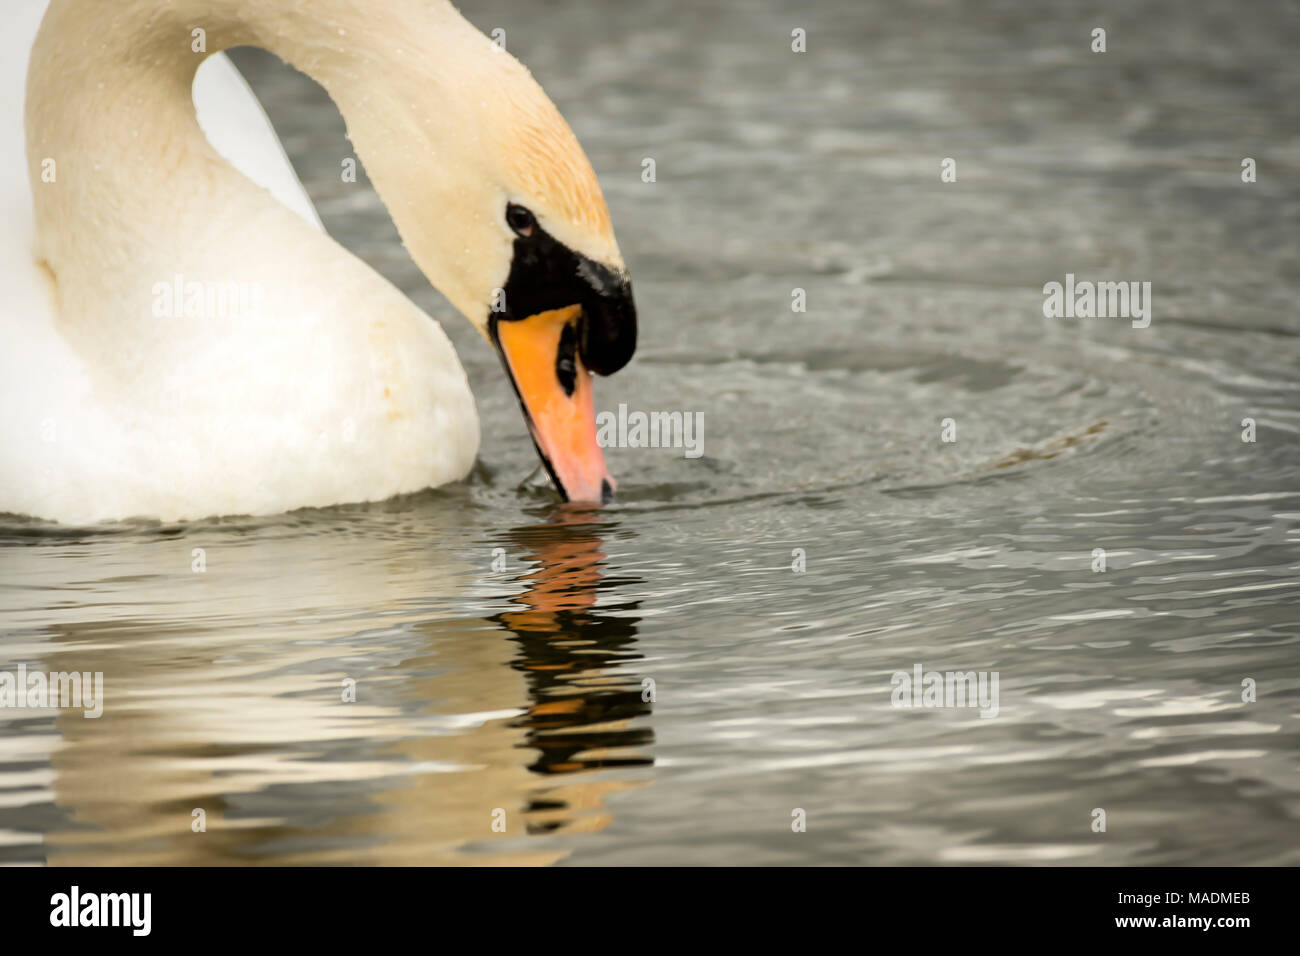 Melton Mowbray 29th March 2017: Swan reflection cold spring weather.  Clifford Norton alamy Live News. - Stock Image